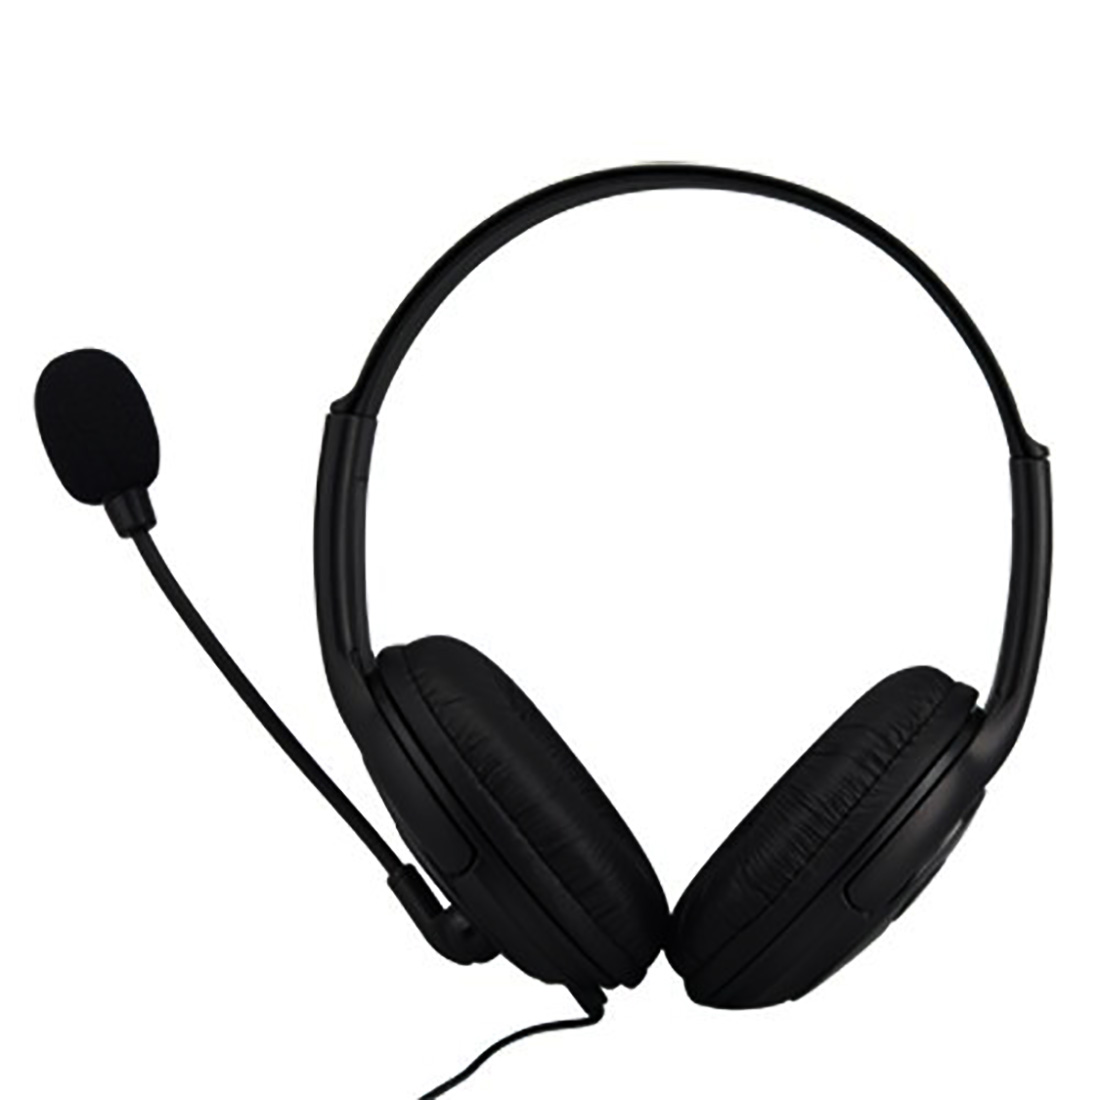 Marsnaska New Fashion Selling protable xbox360 Wired Gaming Chat dual Headset Headphone Microphone for xbox 360 computer Black игра для xbox xbox360 xbox360 homefront f13532